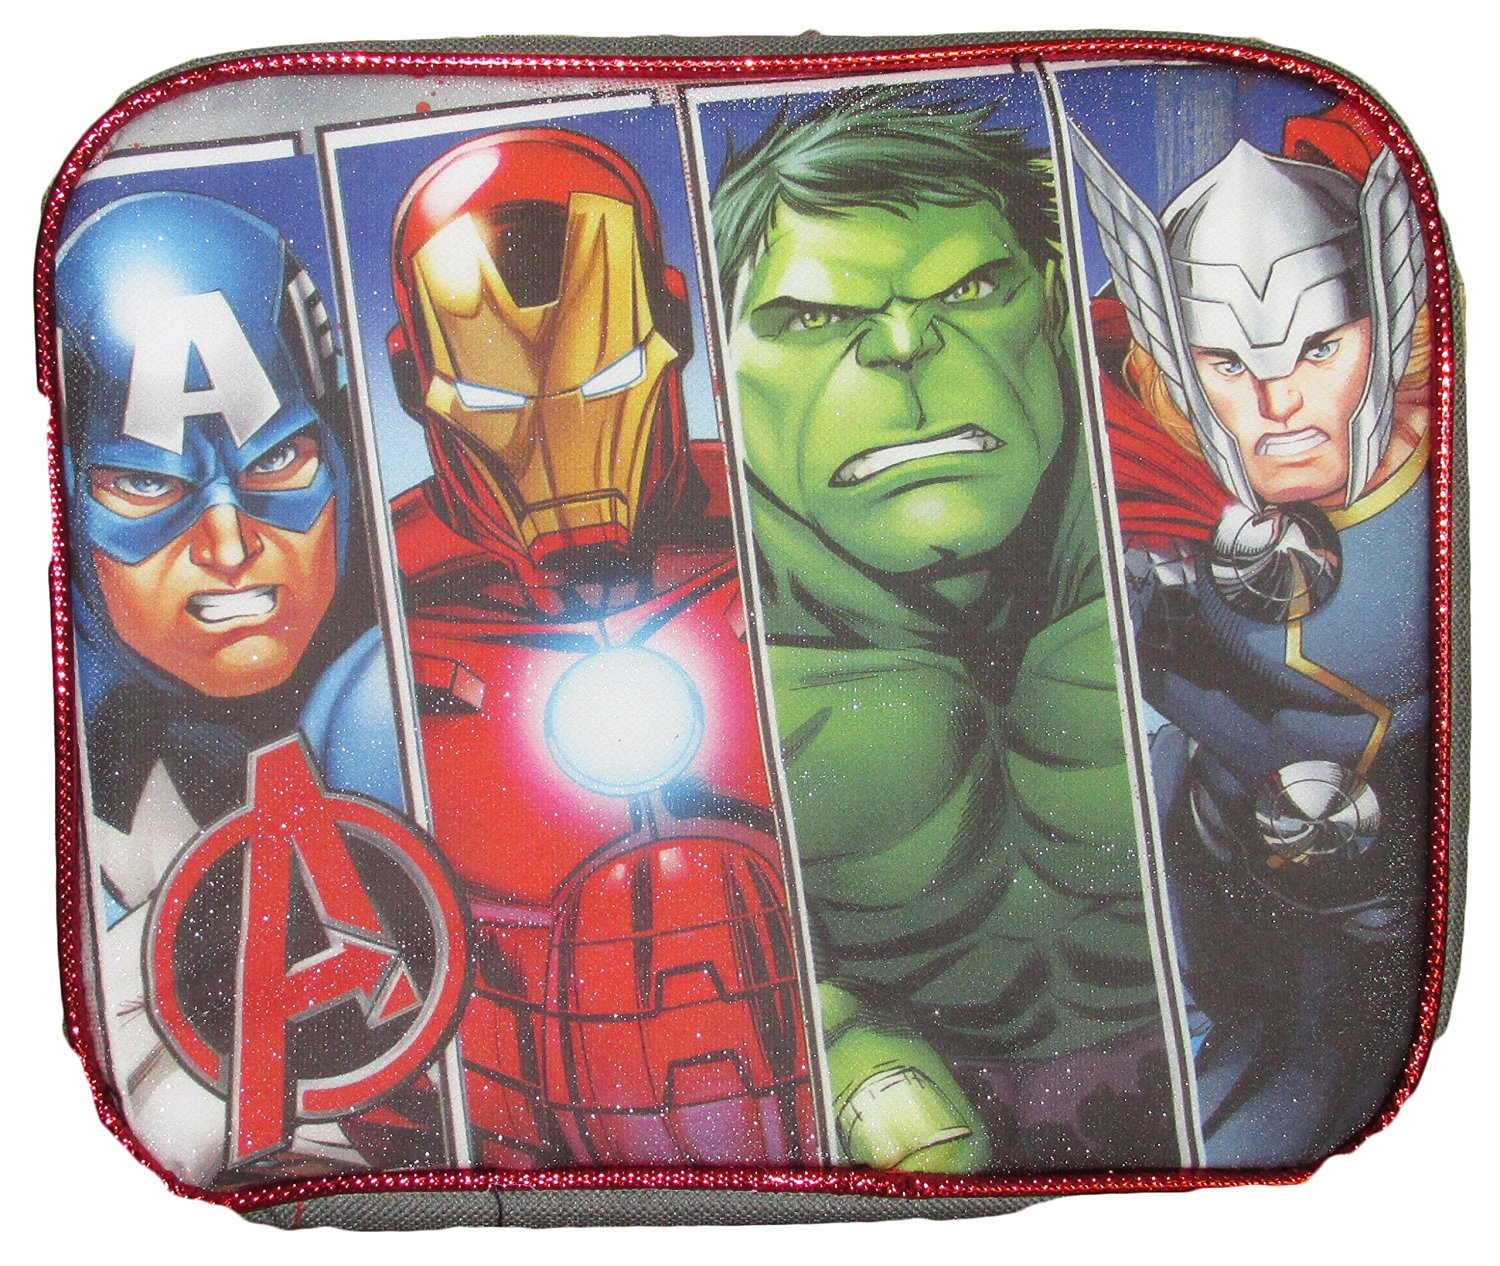 Marvel Comics Avengers Captain America Civil War Insulated Lunch Bag (Avengers 1)